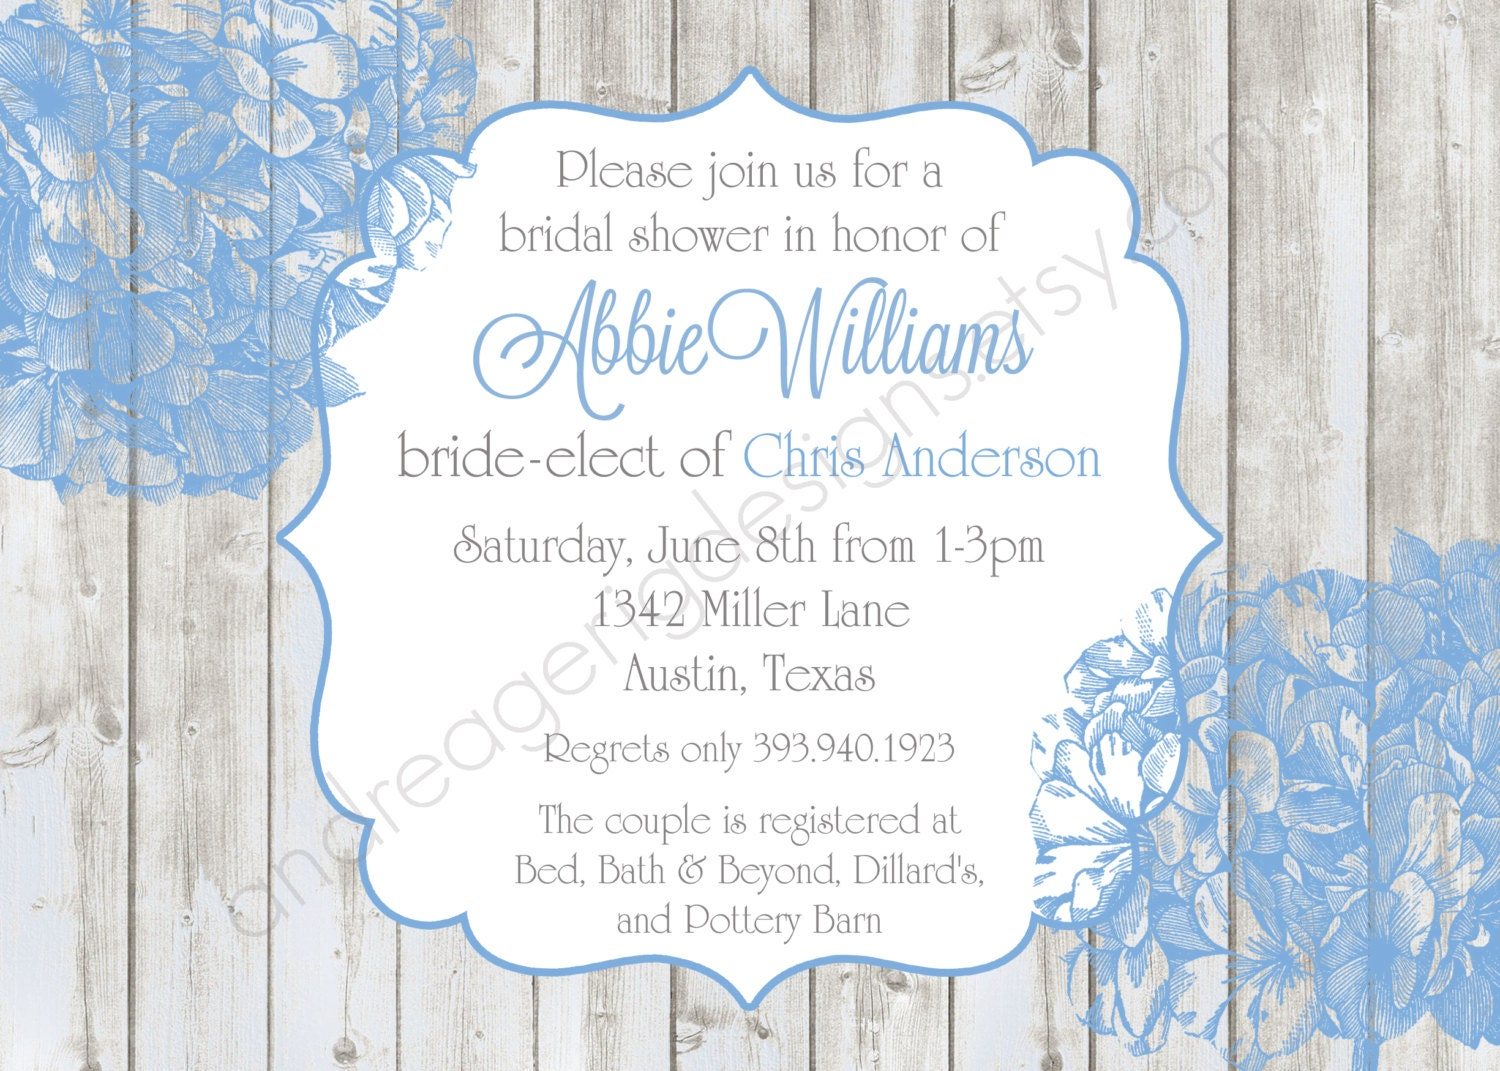 Bridal Shower Invitations Templates Microsoft Word Bridal Shower .  Free Microsoft Word Invitation Templates